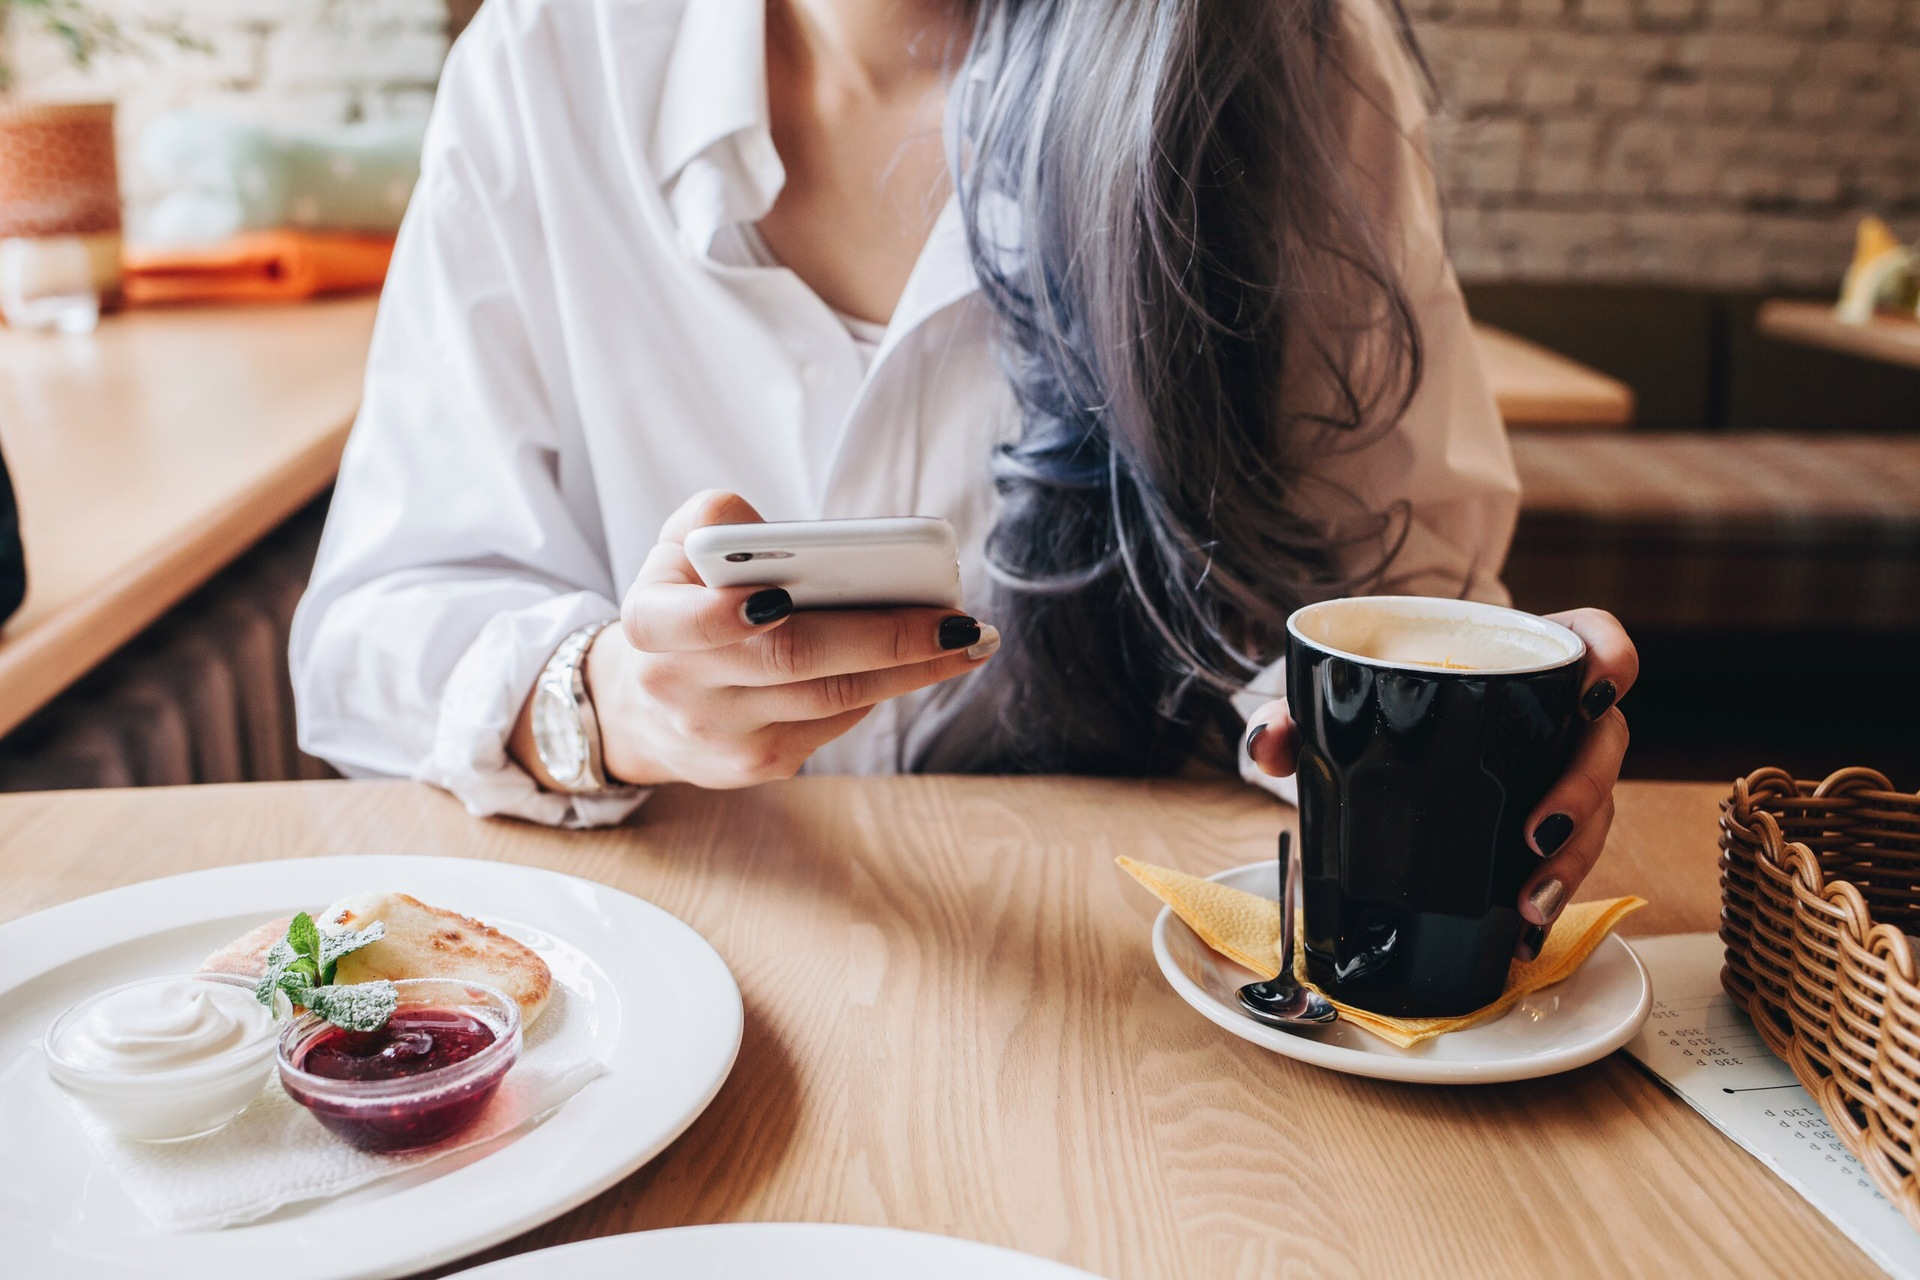 Women in a cafe | adult, breakfast, cup, food